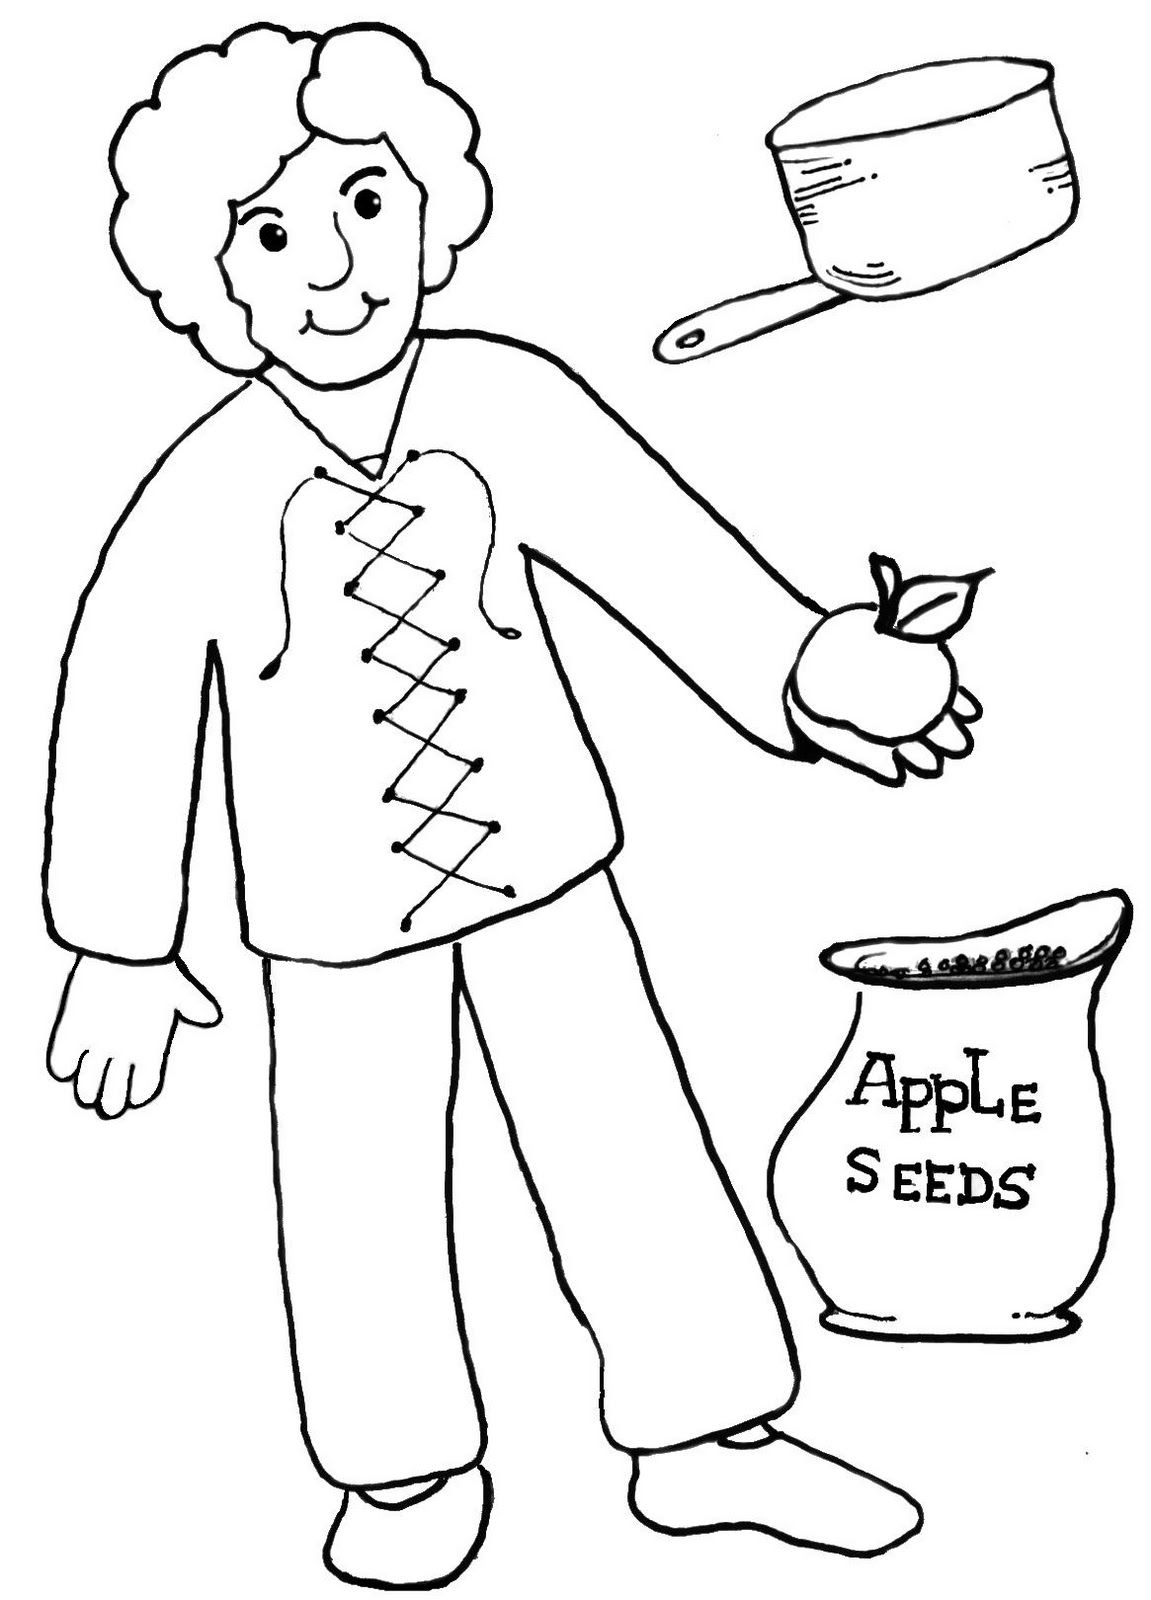 johnny appleseed color pages printable pages | Homeschool 4 Free ...